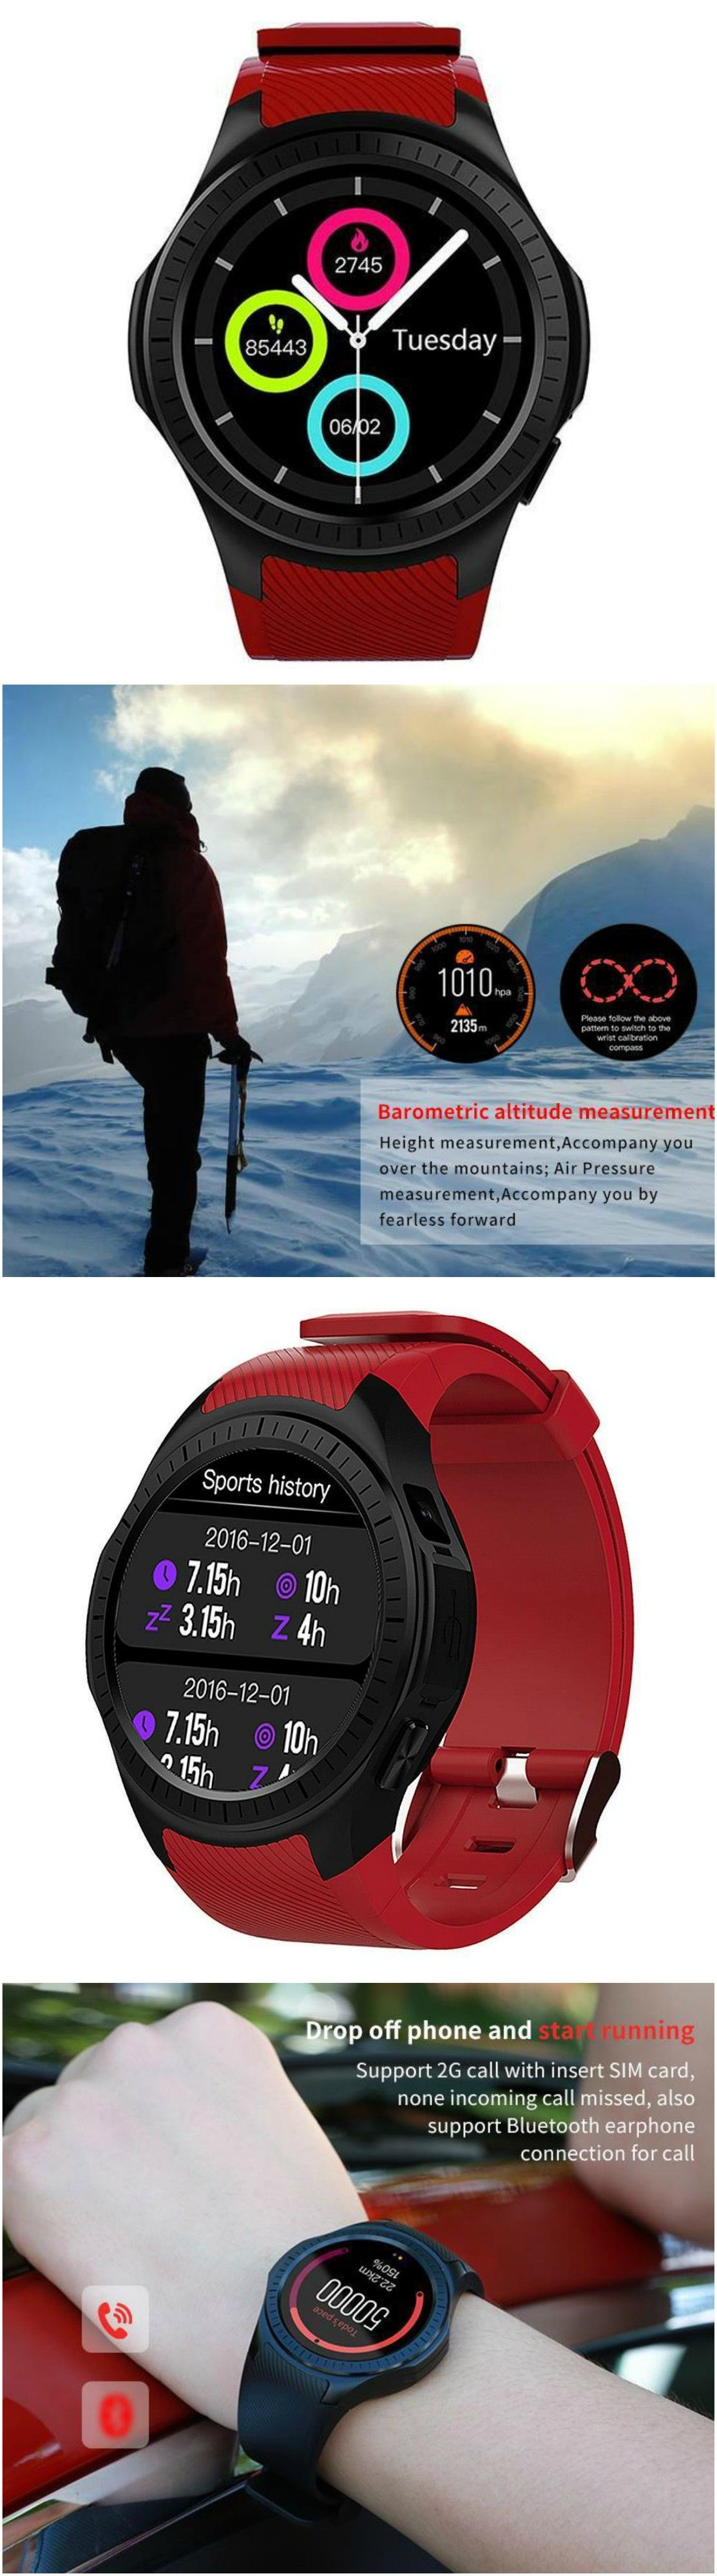 New Pro Gps Sports Smart Watch Bluetooth Smart Band With Heart Rate Monitor Music Player For Android Ios Smart Band Fitness Wristband Daily Workout